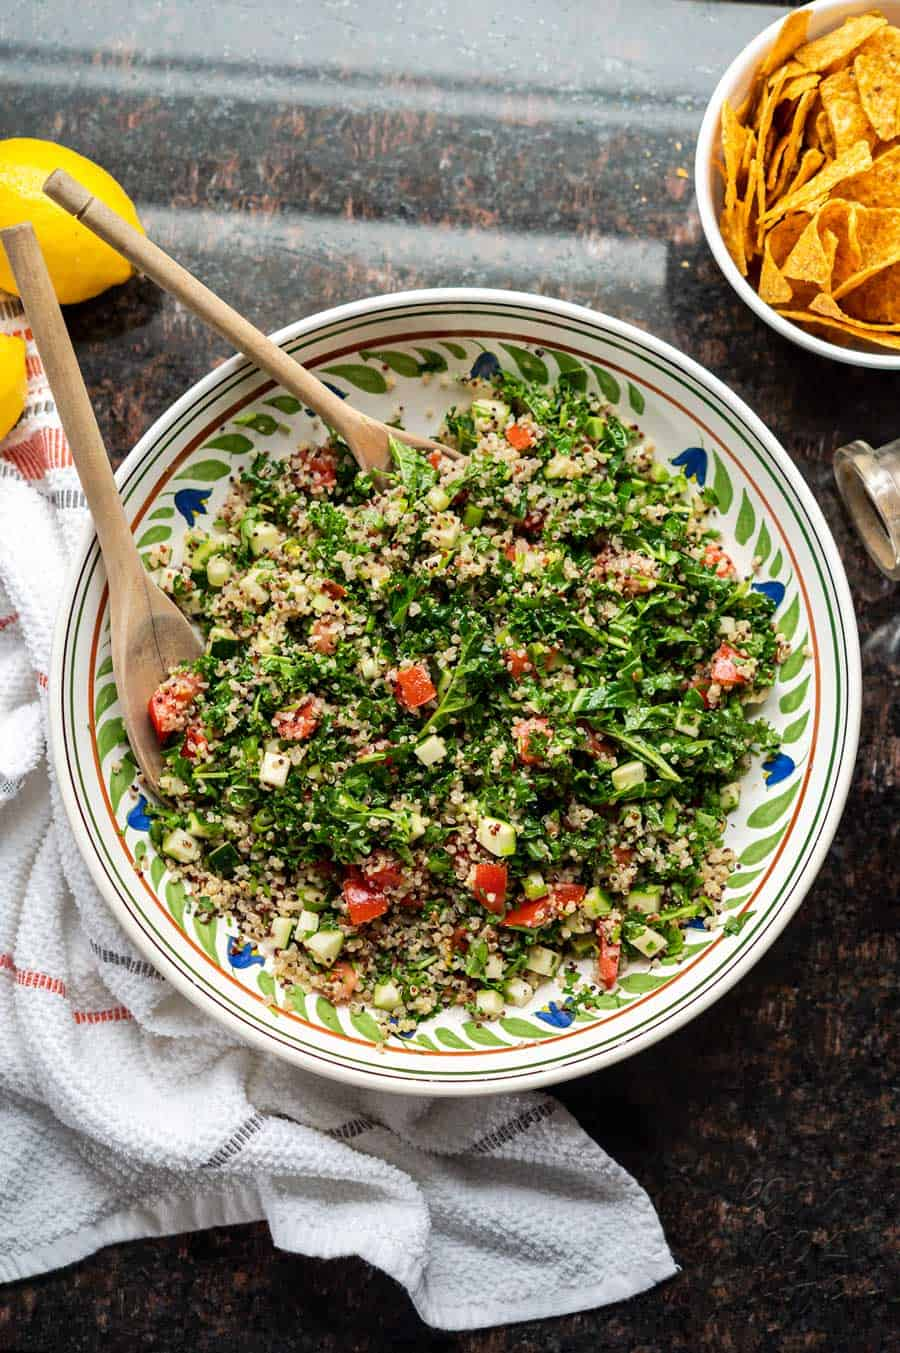 Image of kale quinoa tabbouleh salad in a large ceramic bowl, on granite countertop.